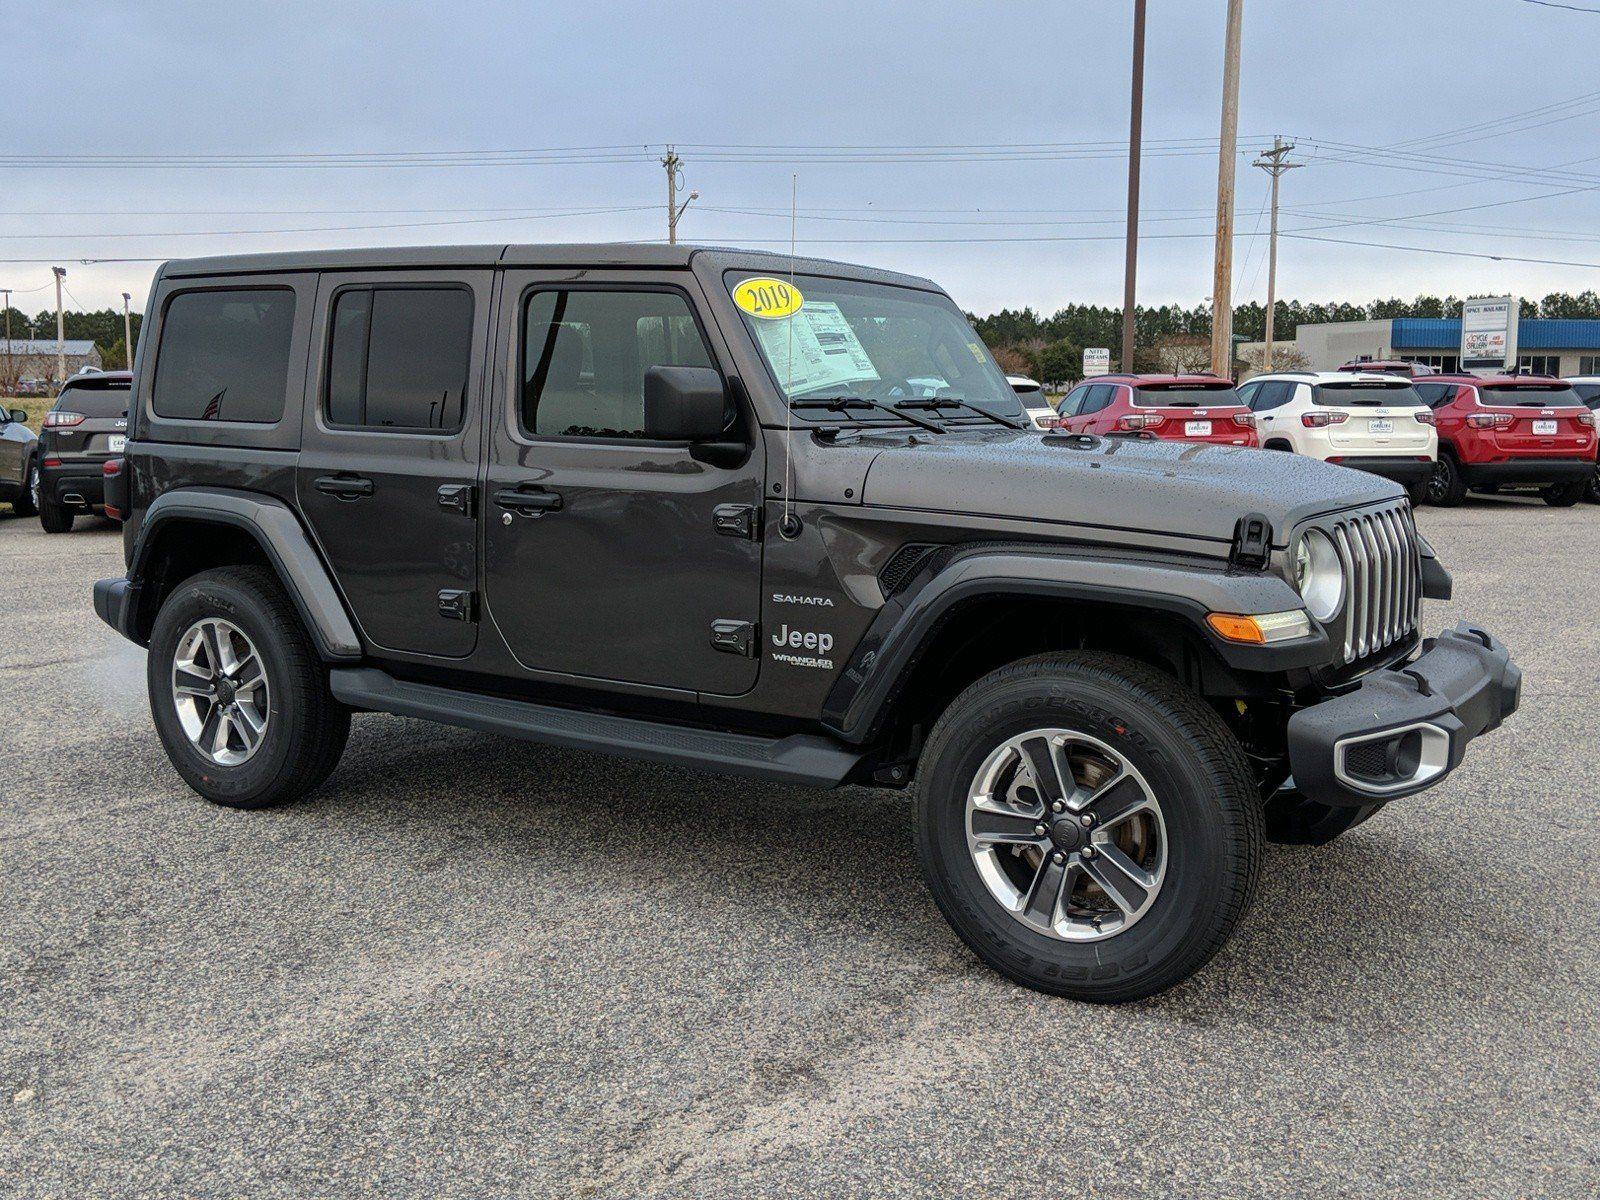 106 New Cdjr Vehicles In Stock Jeep Wrangler For Sale Jeep Wrangler Jeep